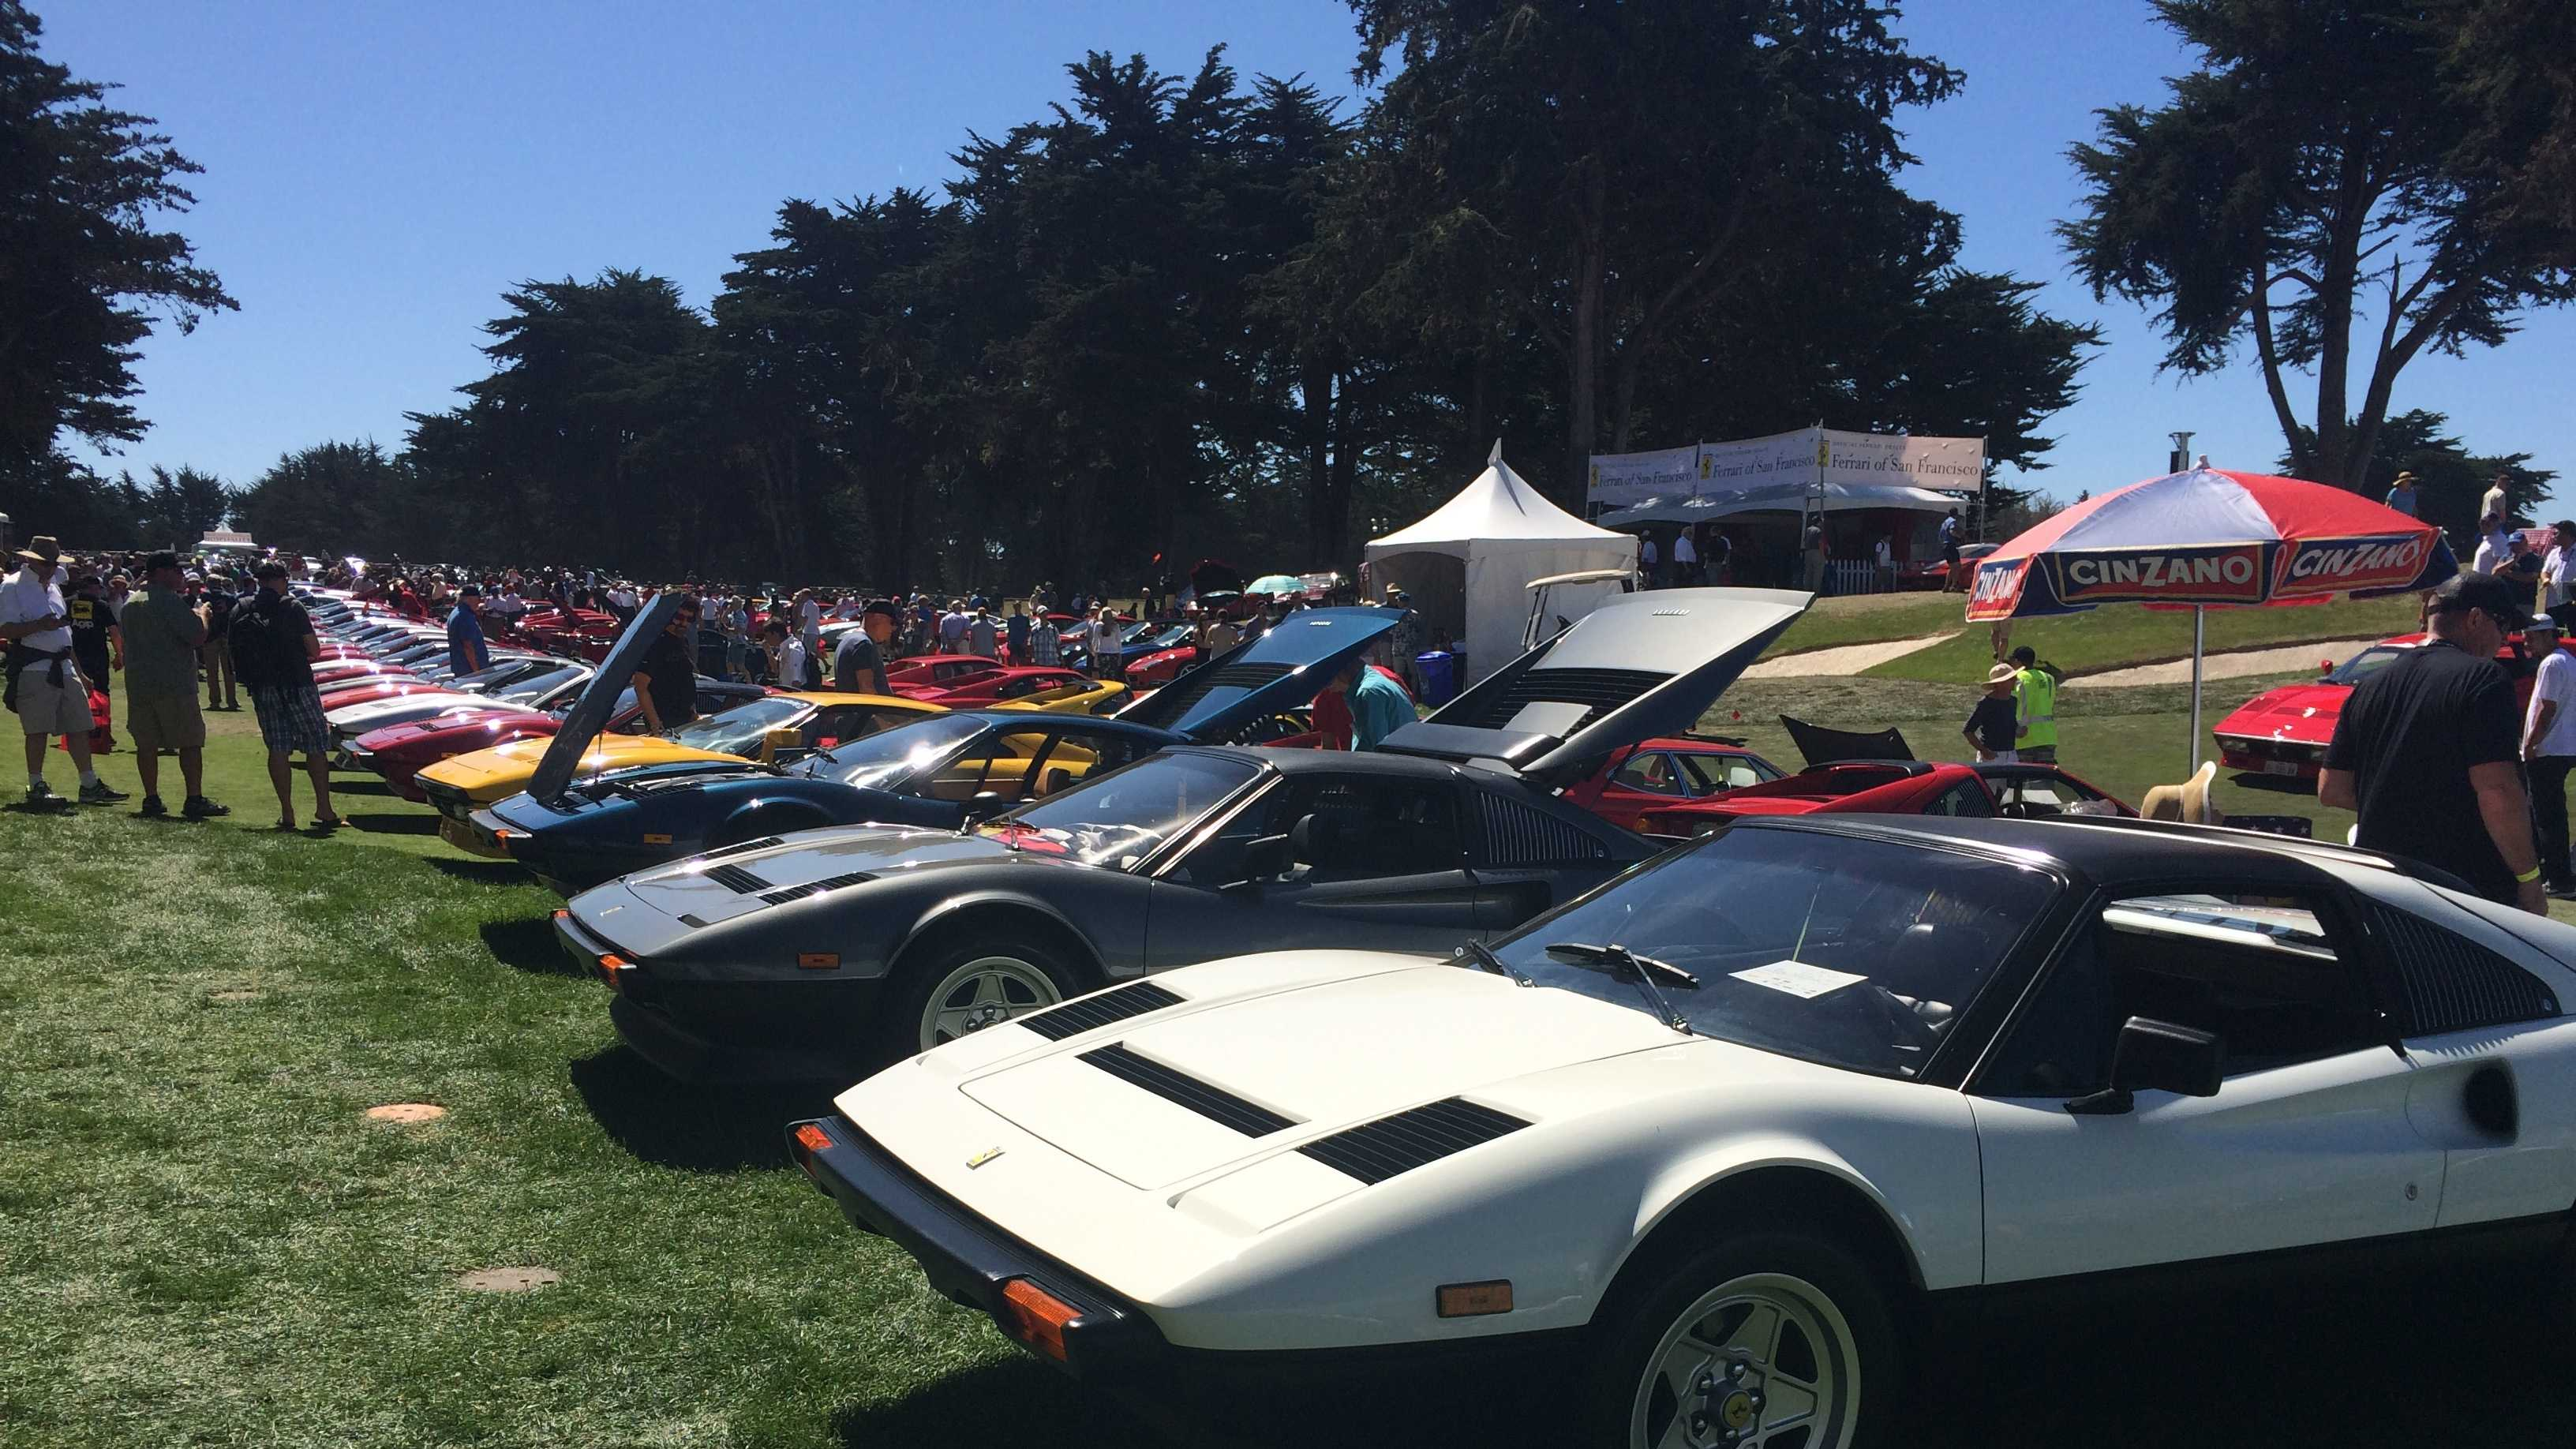 Concurso Italiano celebrates Italian cars on Monterey Peninsula.